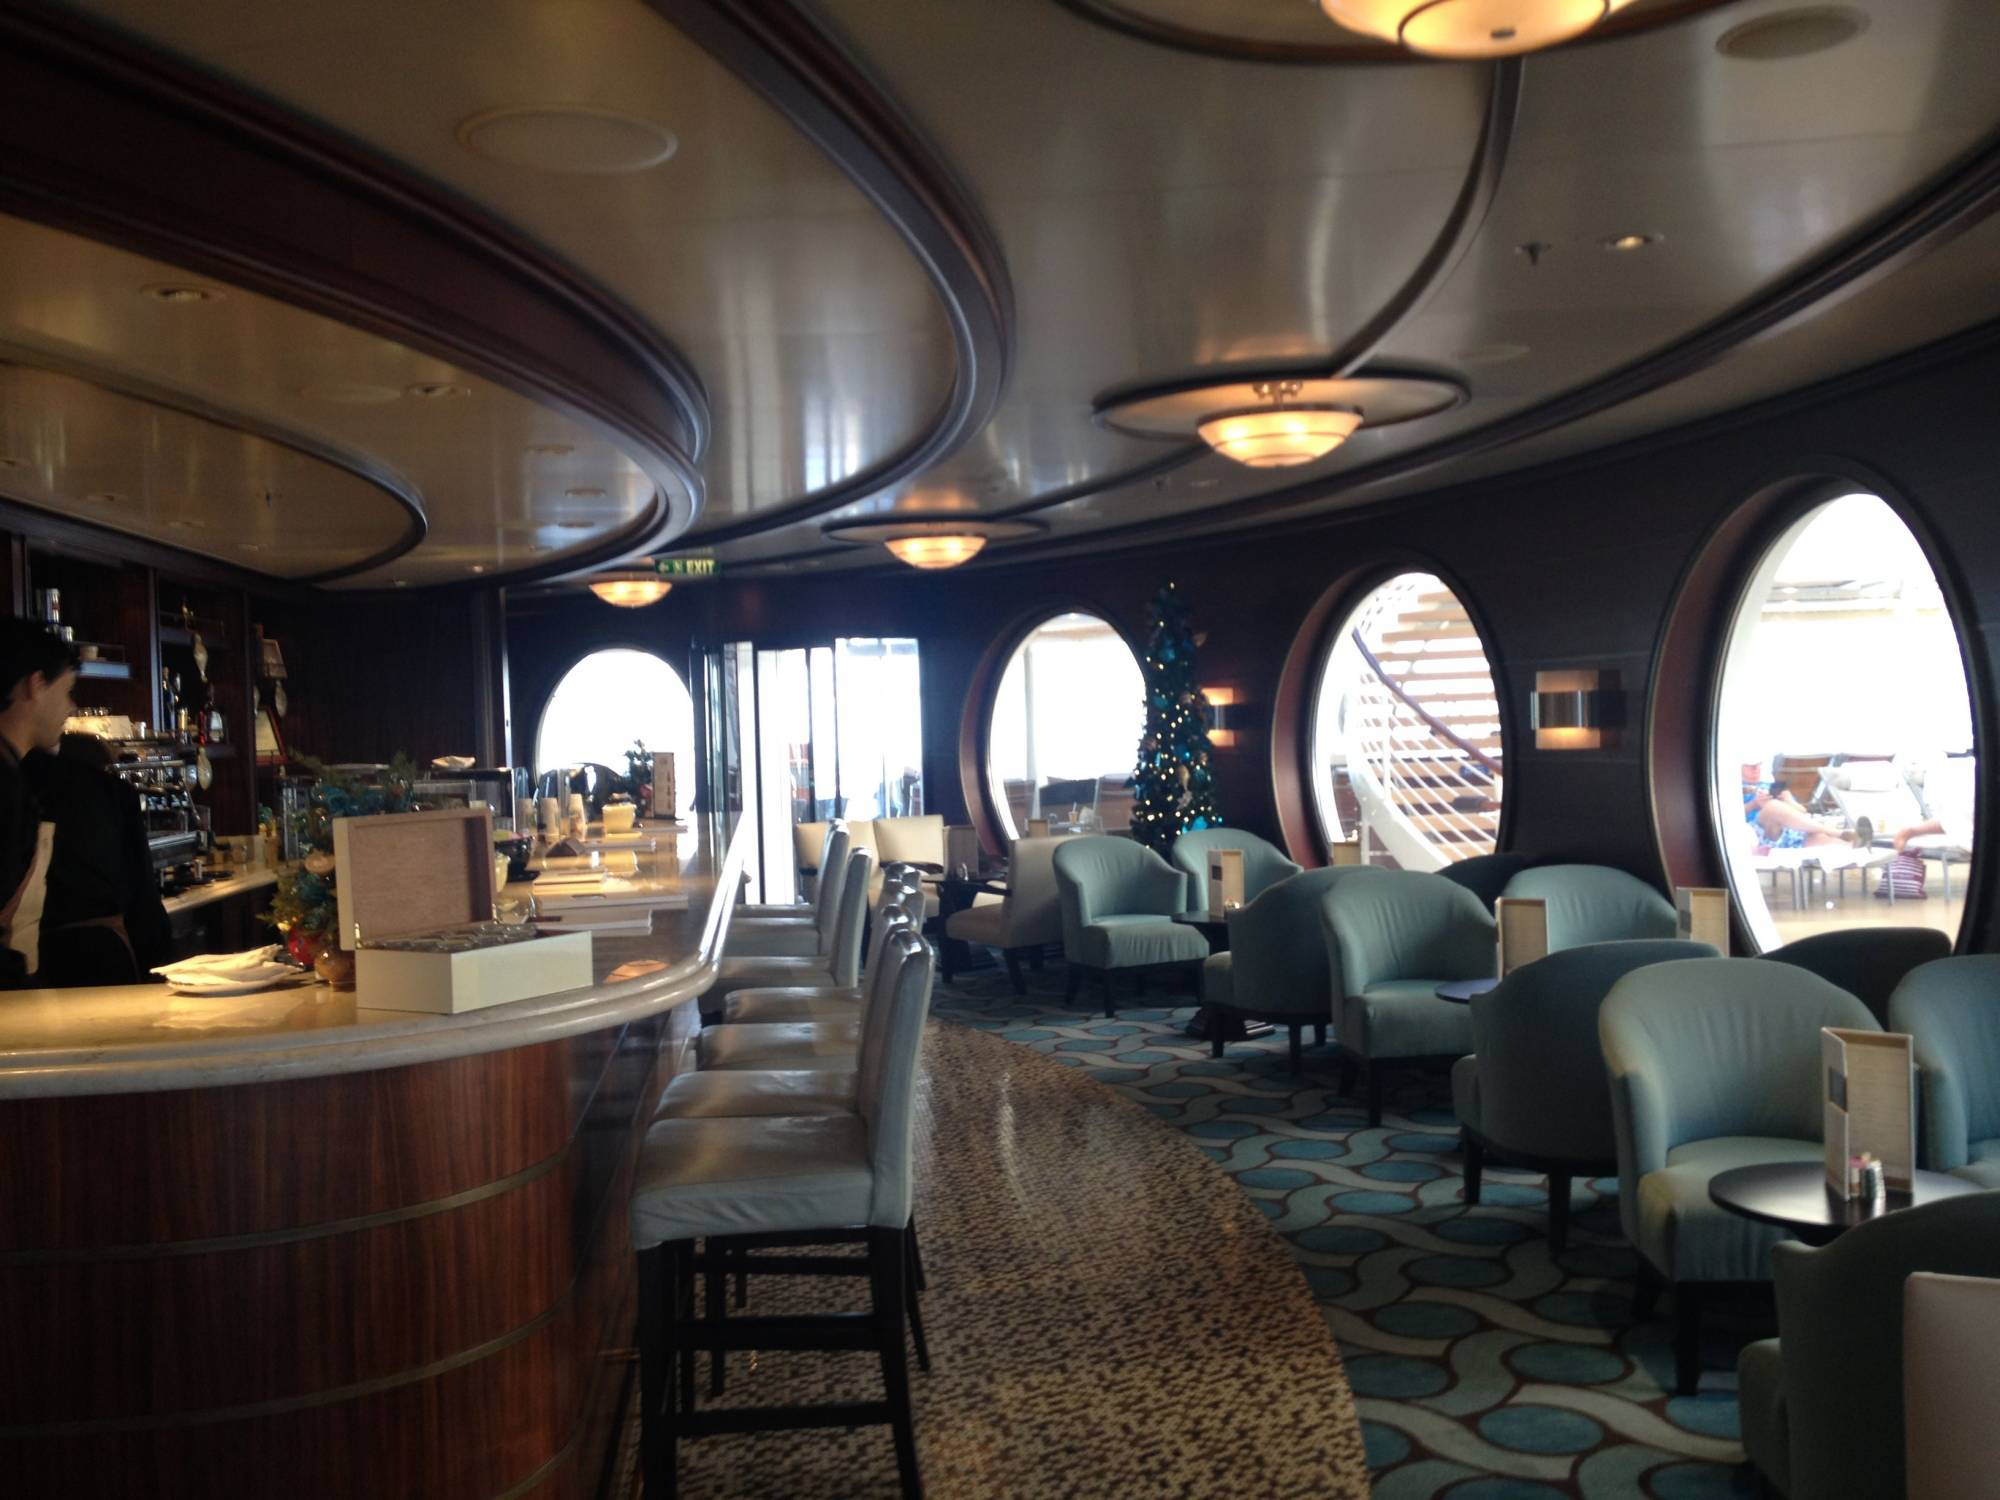 Disney Cruise Line is not just for kids |PassPorter.com